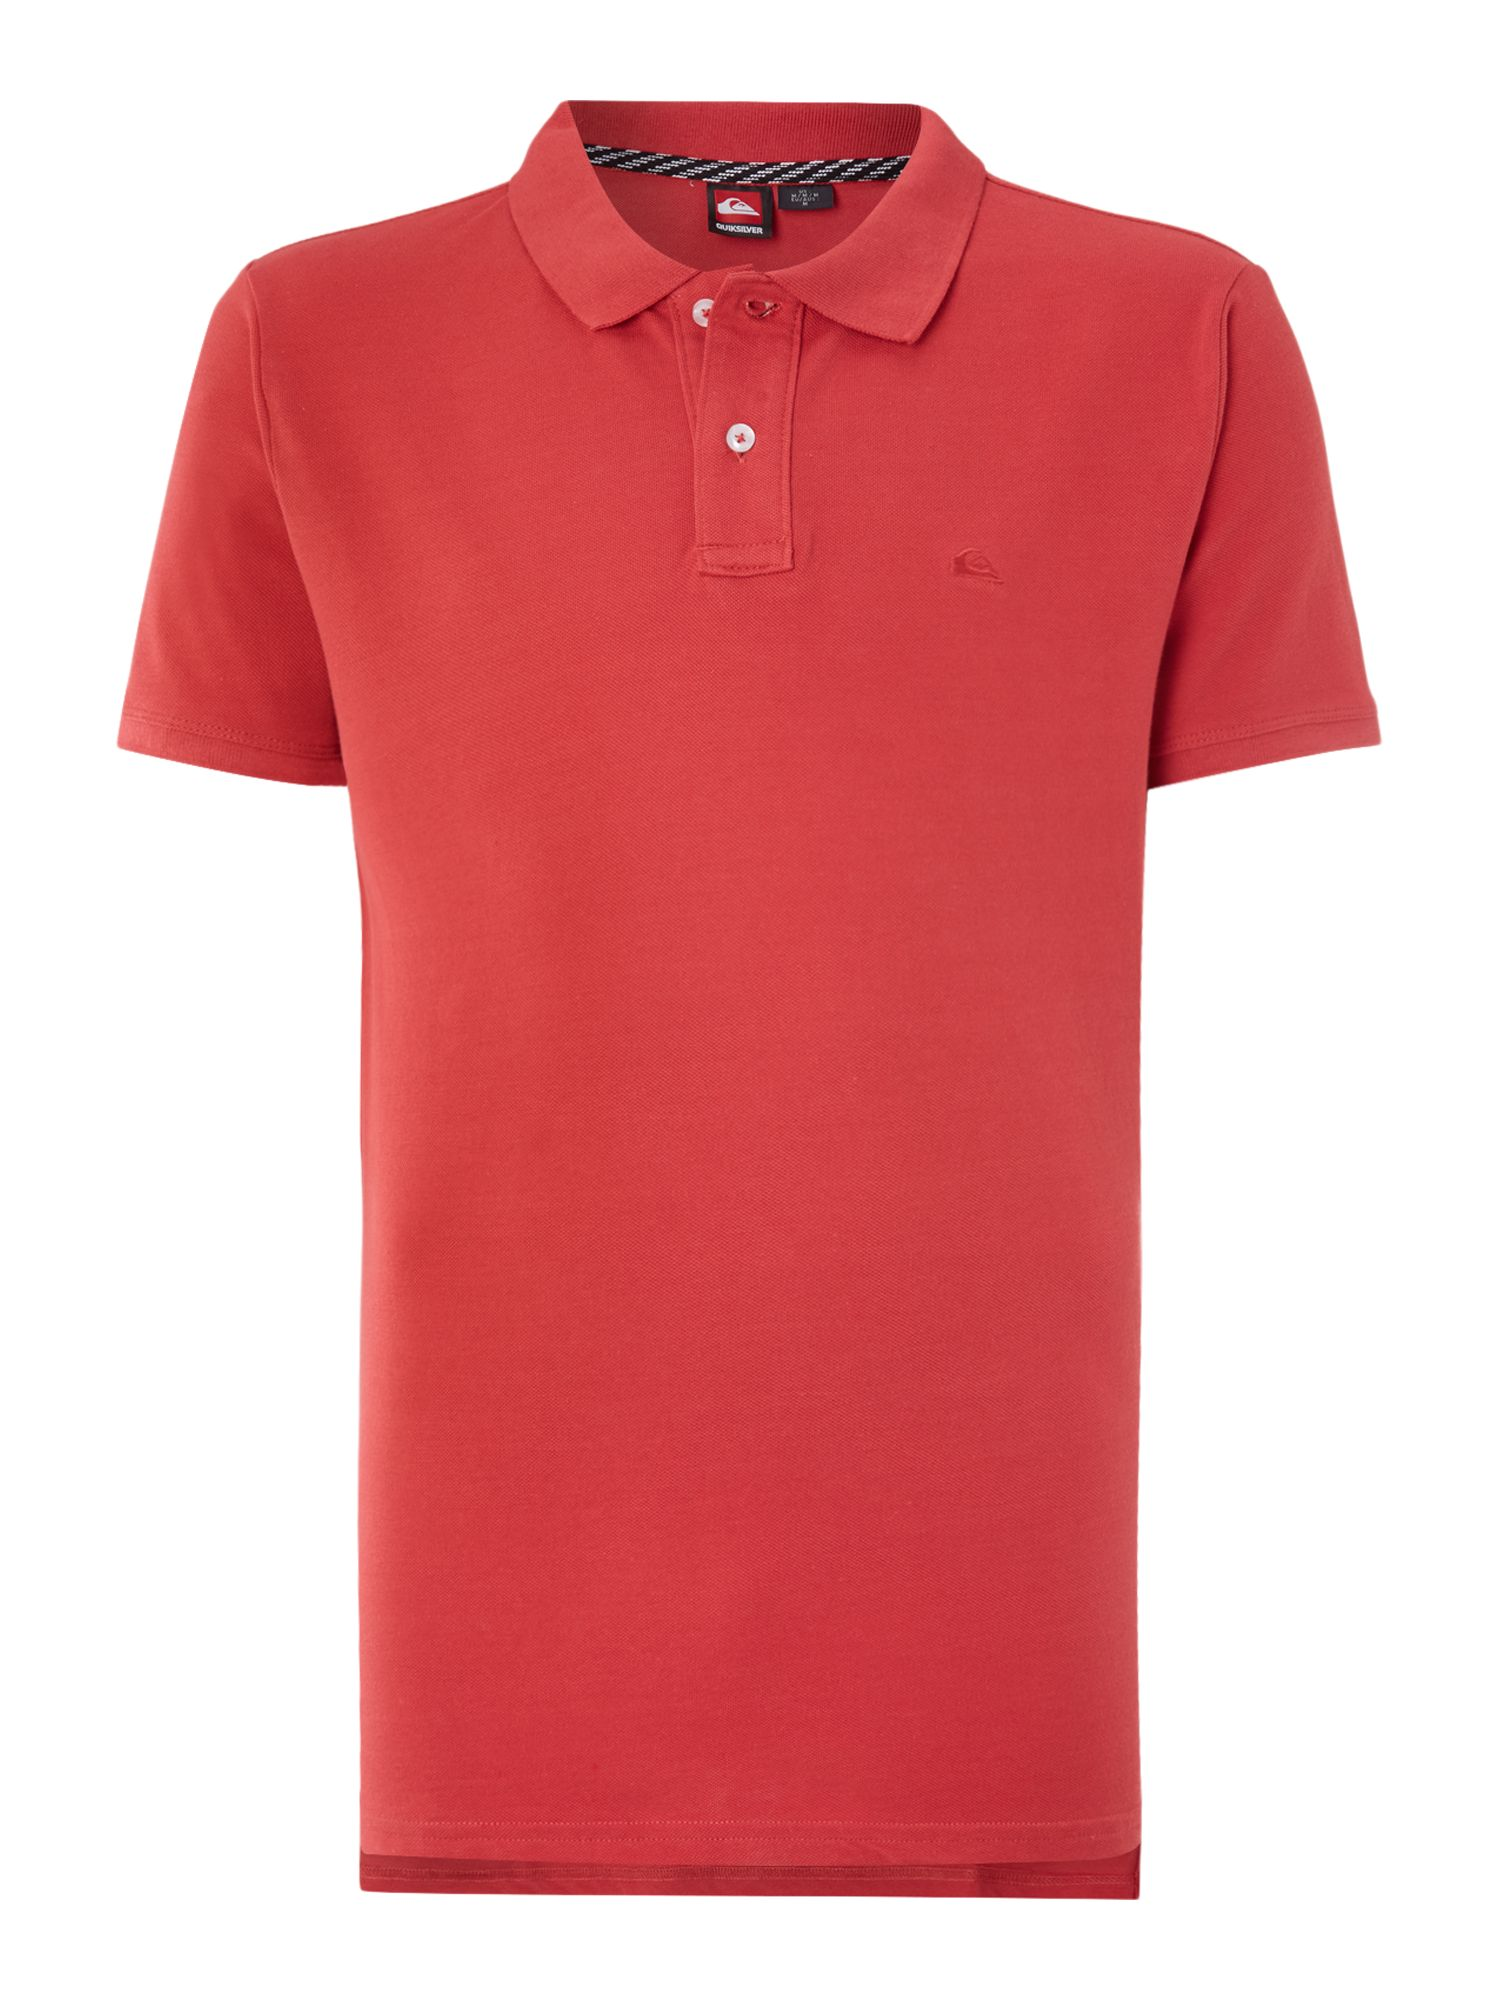 Choma polo shirt